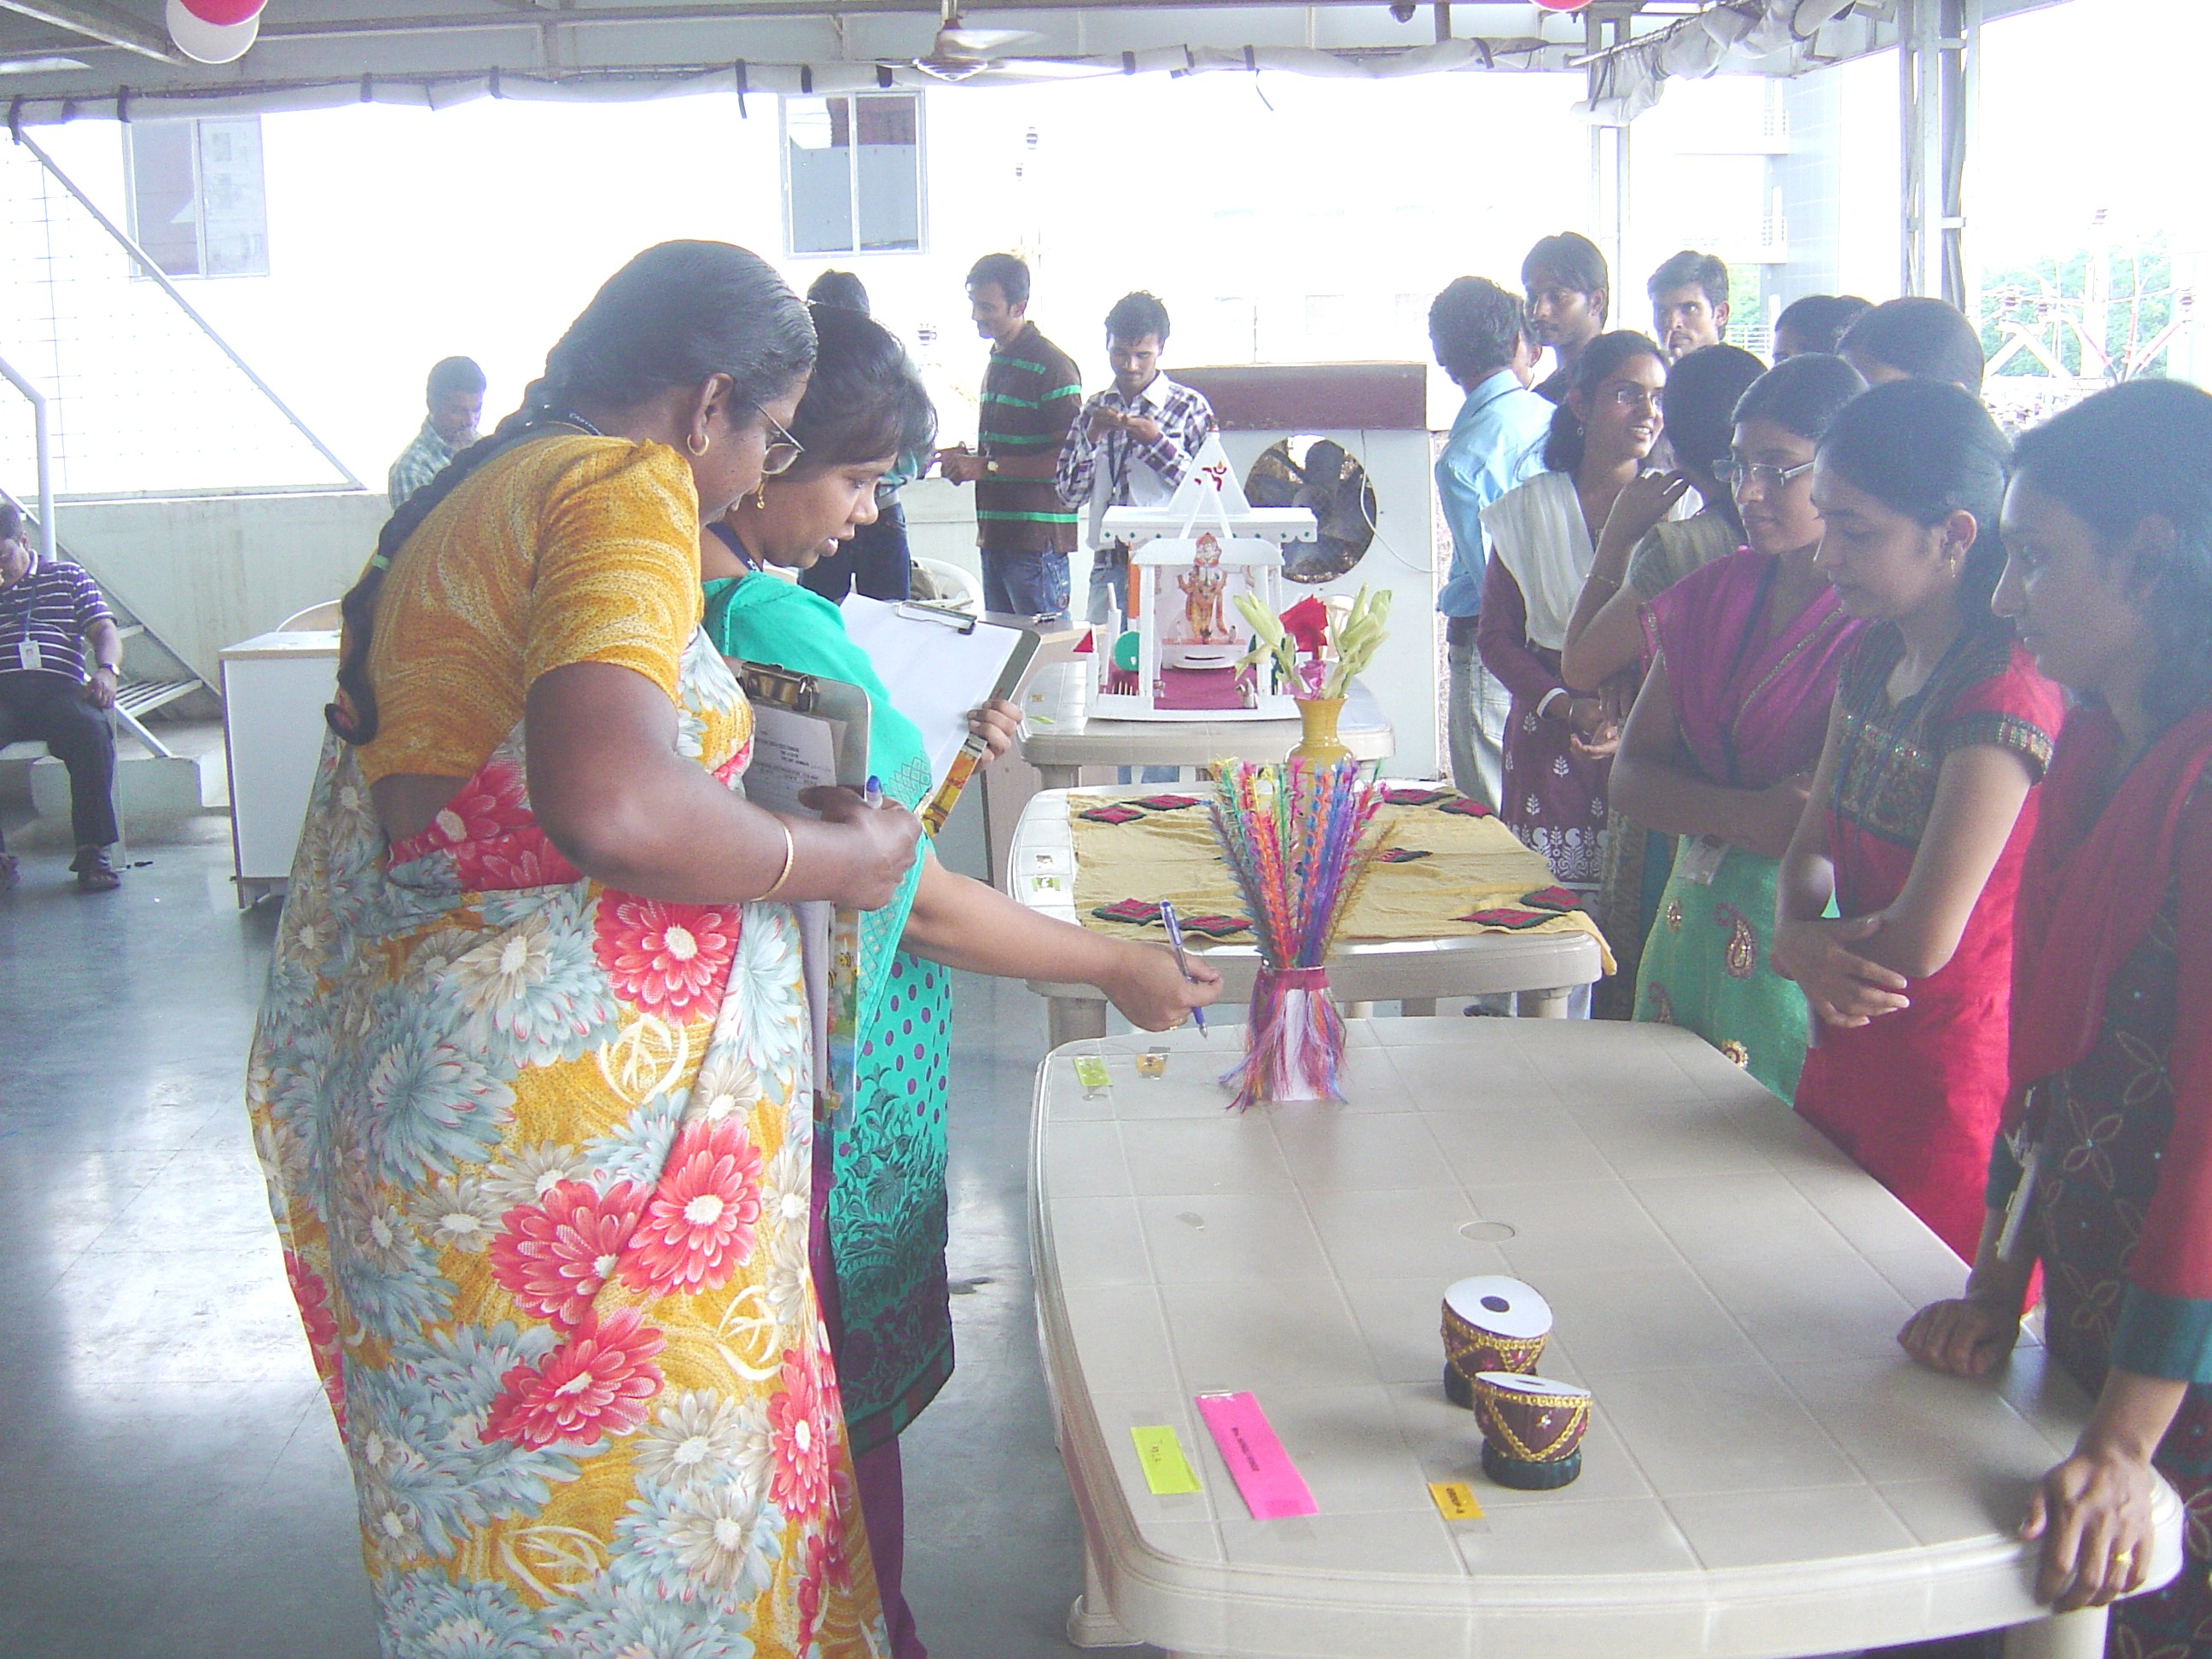 CRAFT MAKING COMPETITION FROM WASTE MATERIALS | Easypack's Blog